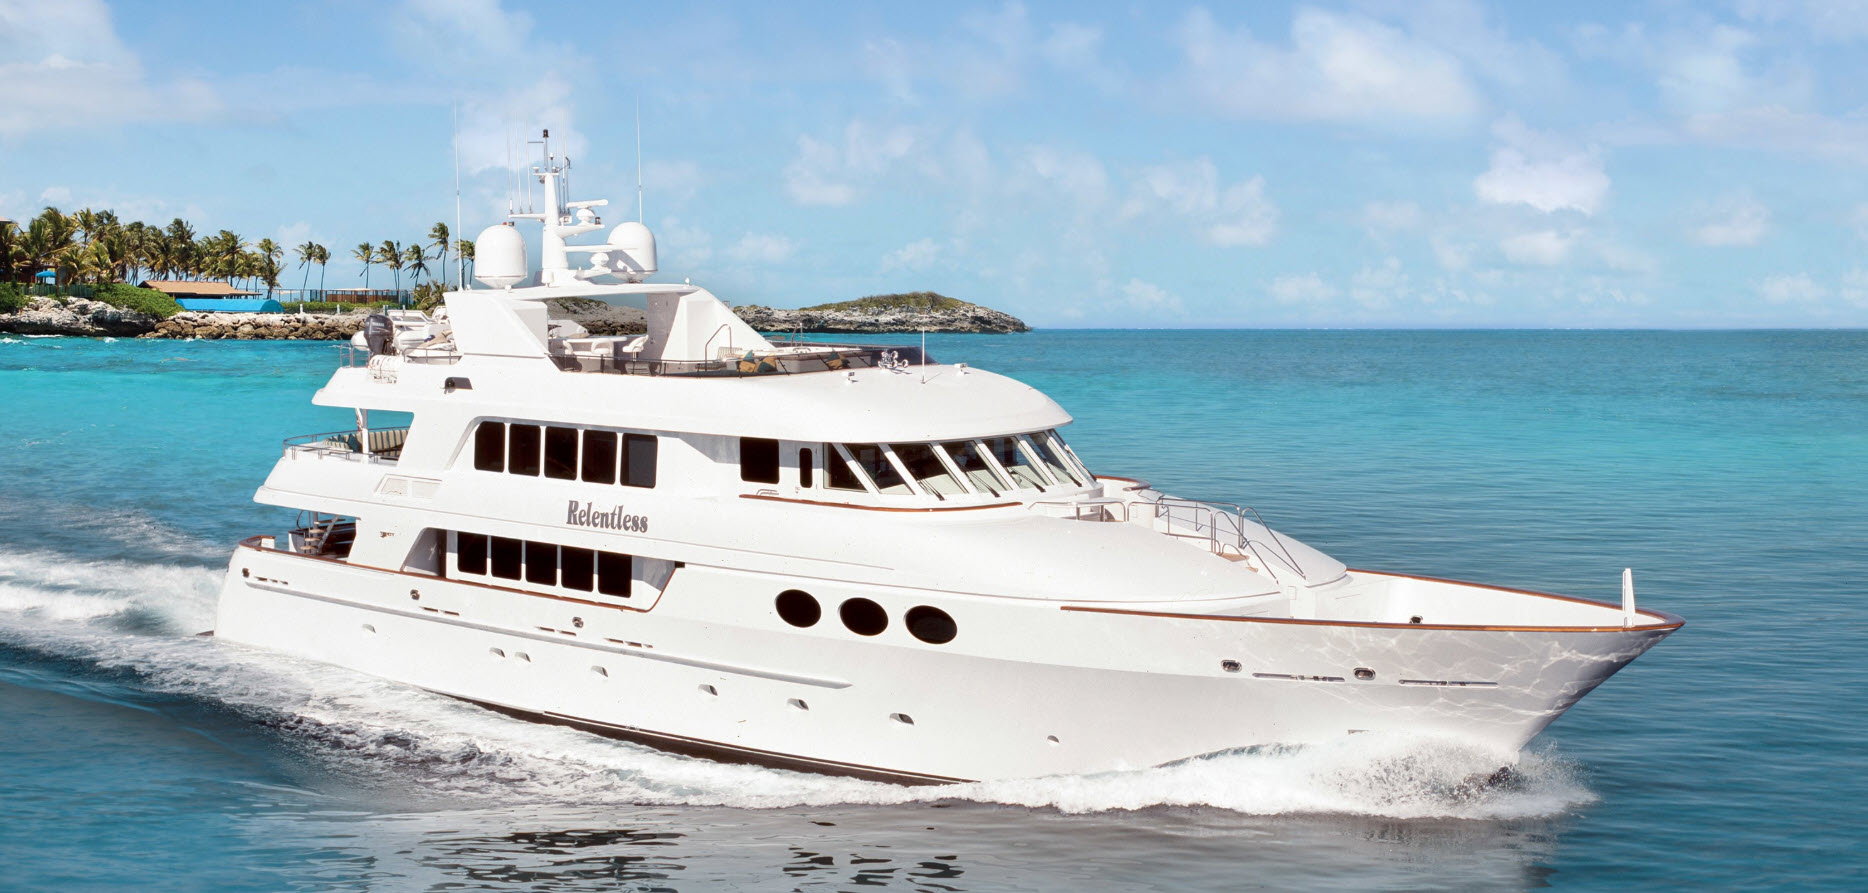 used-trinity-yachts-for-sale-header